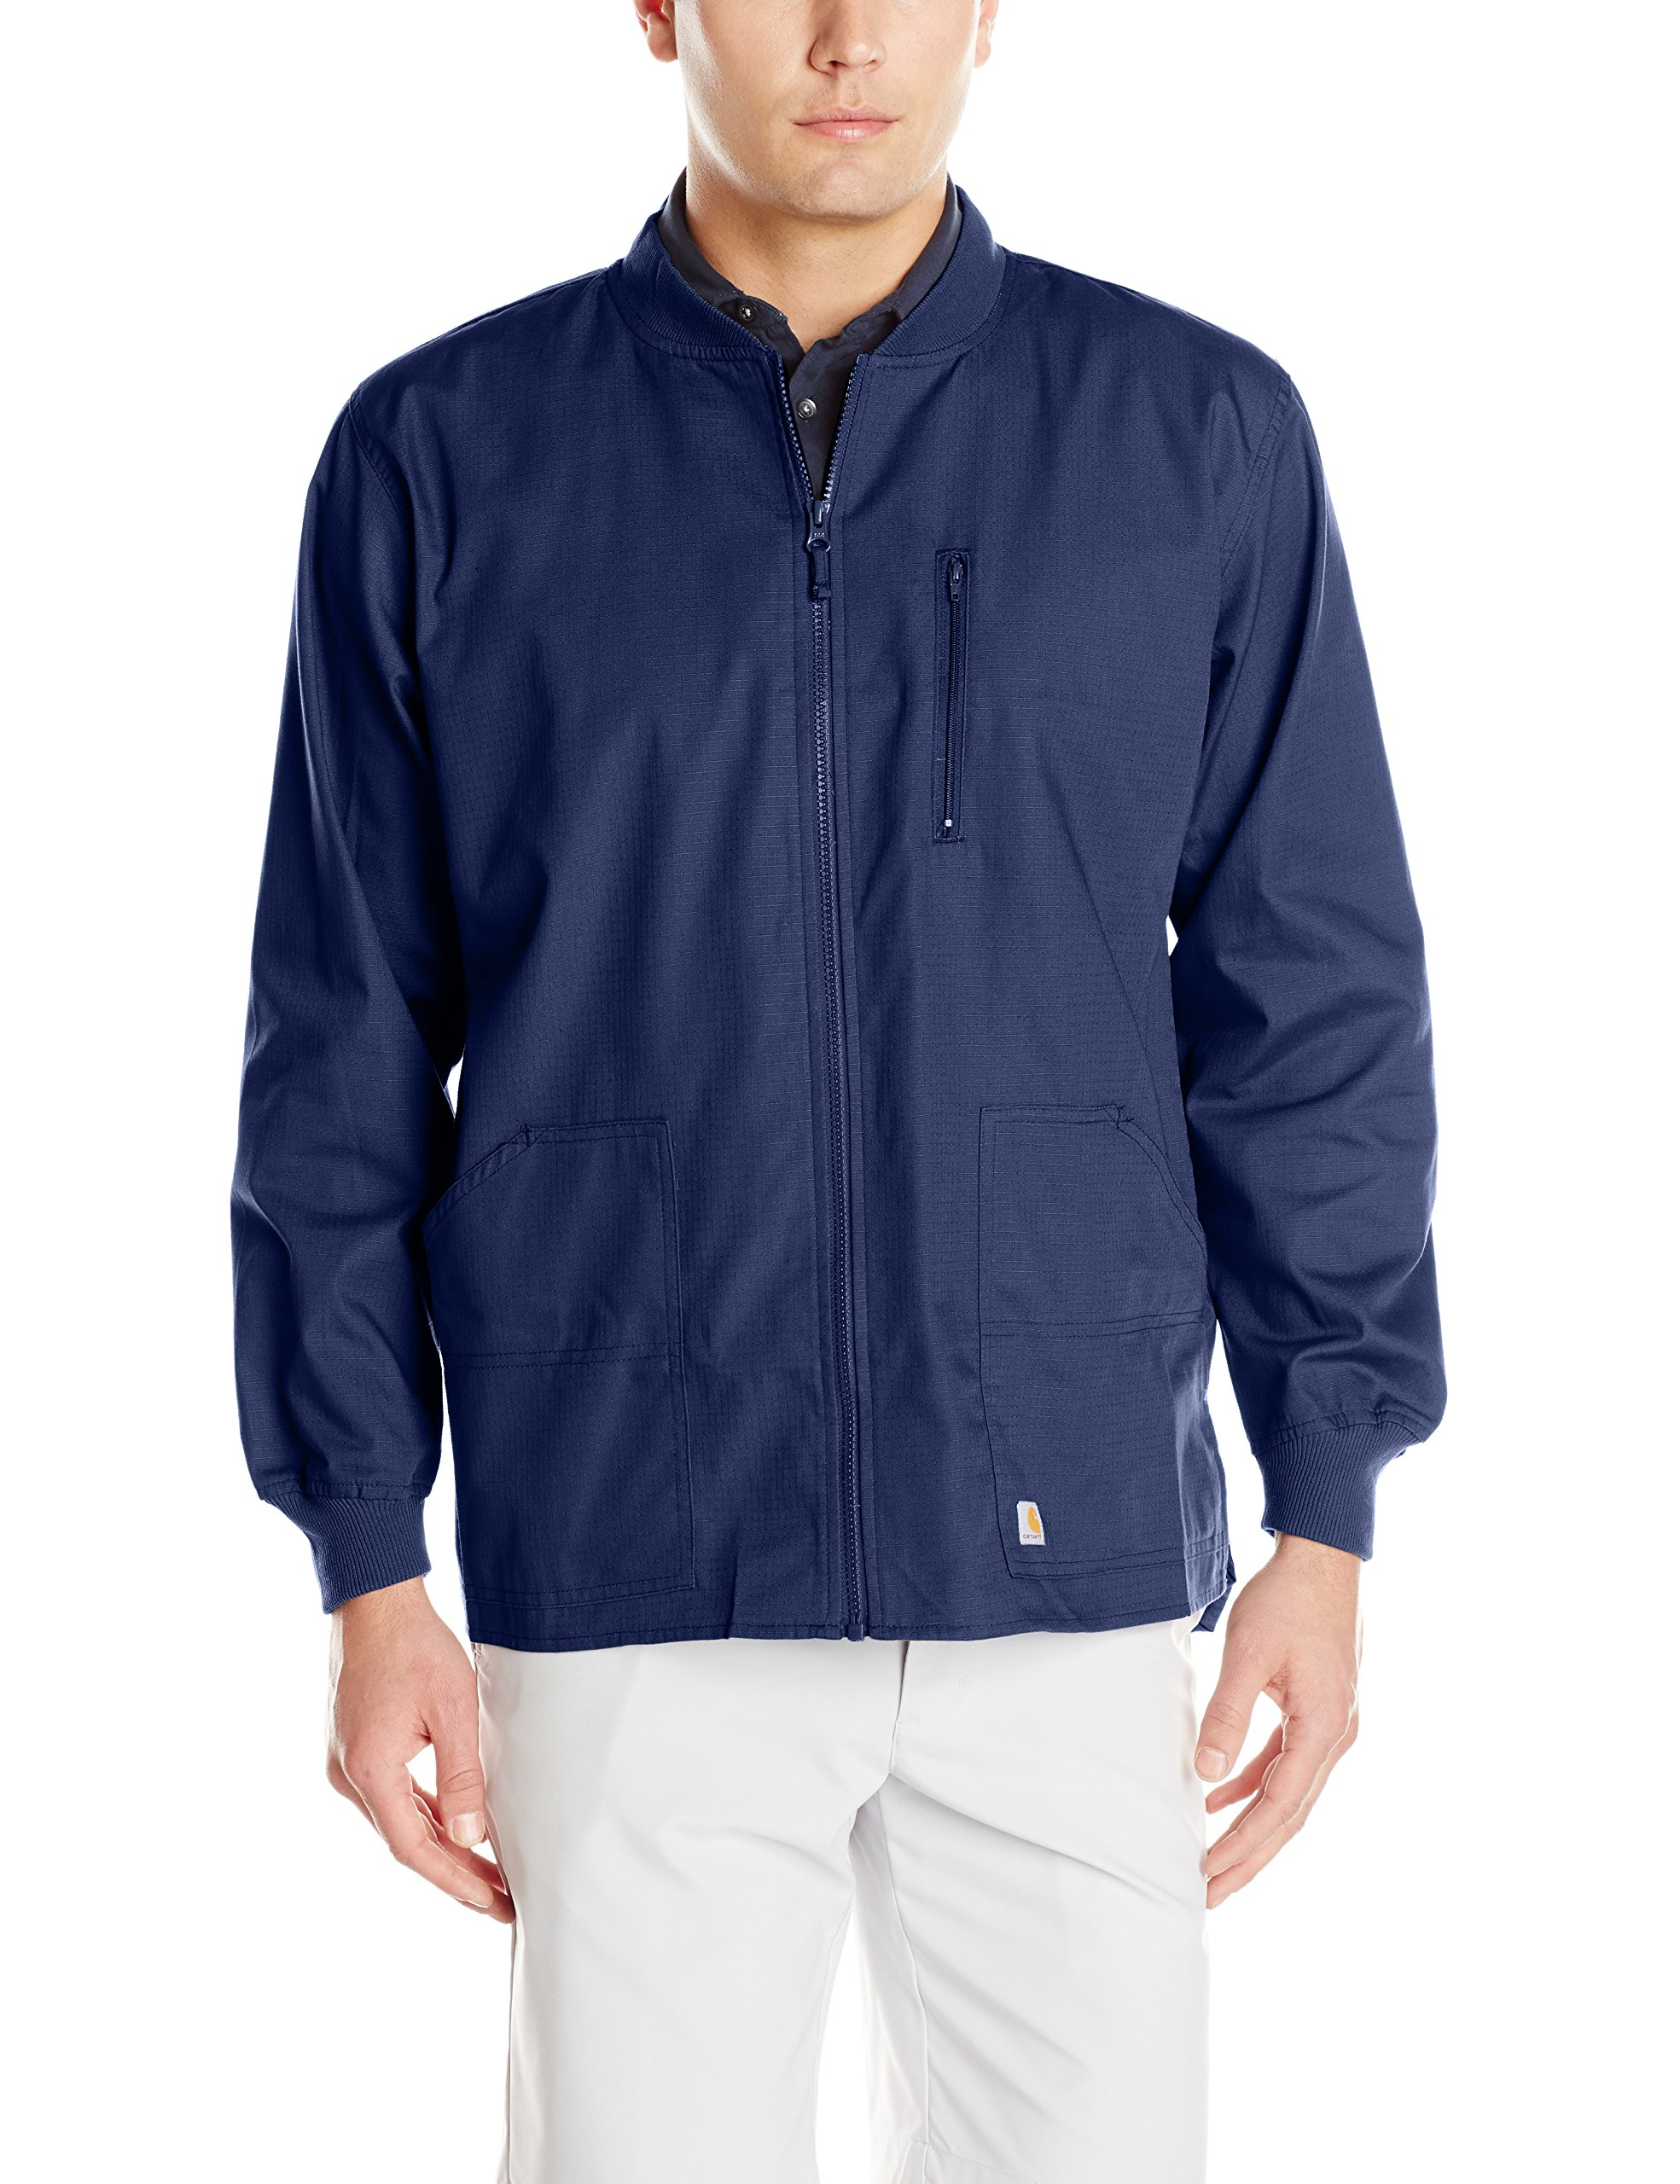 Carhartt Men's Ripstop Zip Front Scrub Jacket, Navy, Large